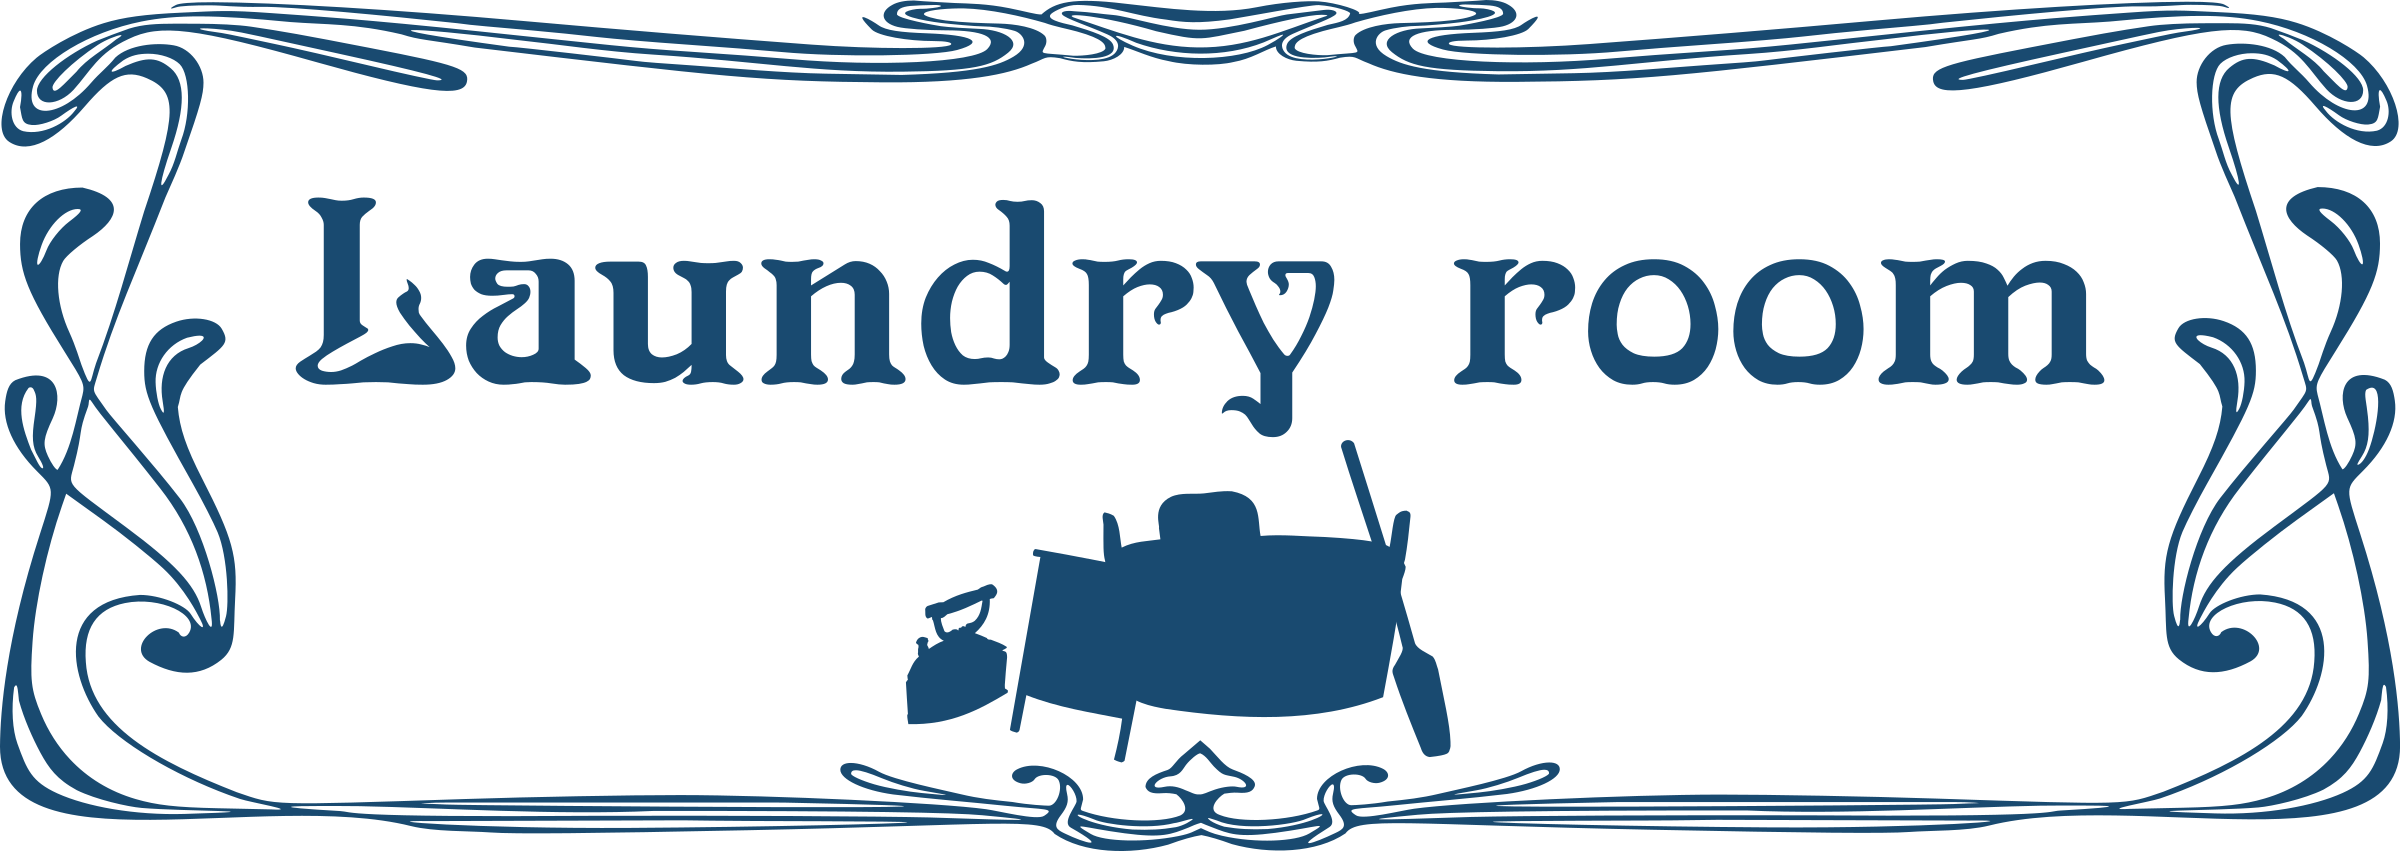 Clipart door room door. Laundry sign big image